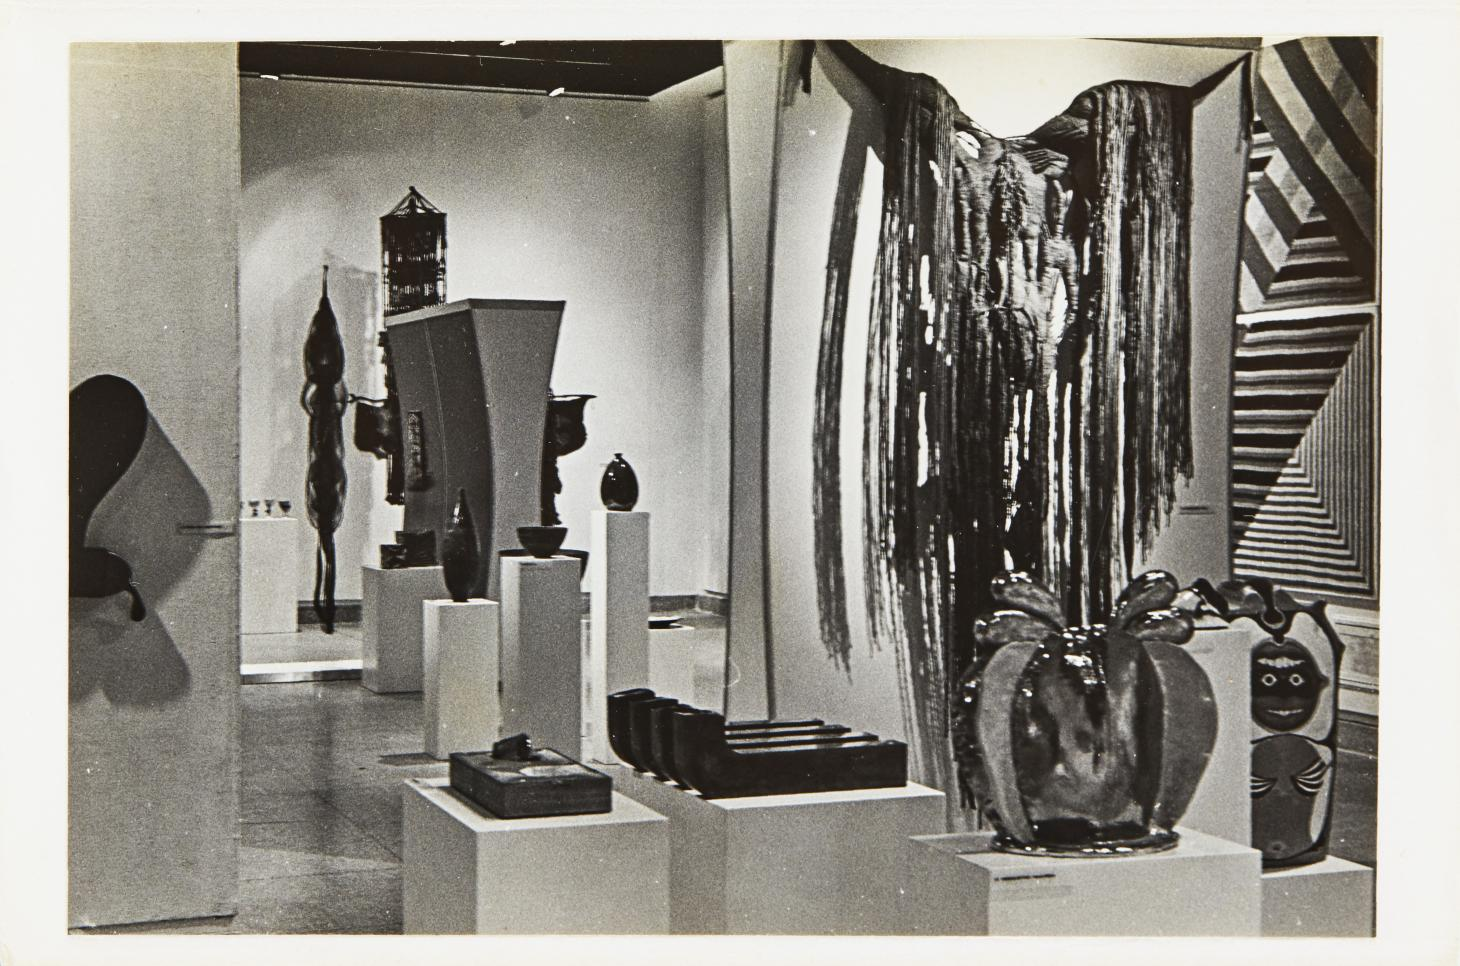 Objects USA exhibition 1969